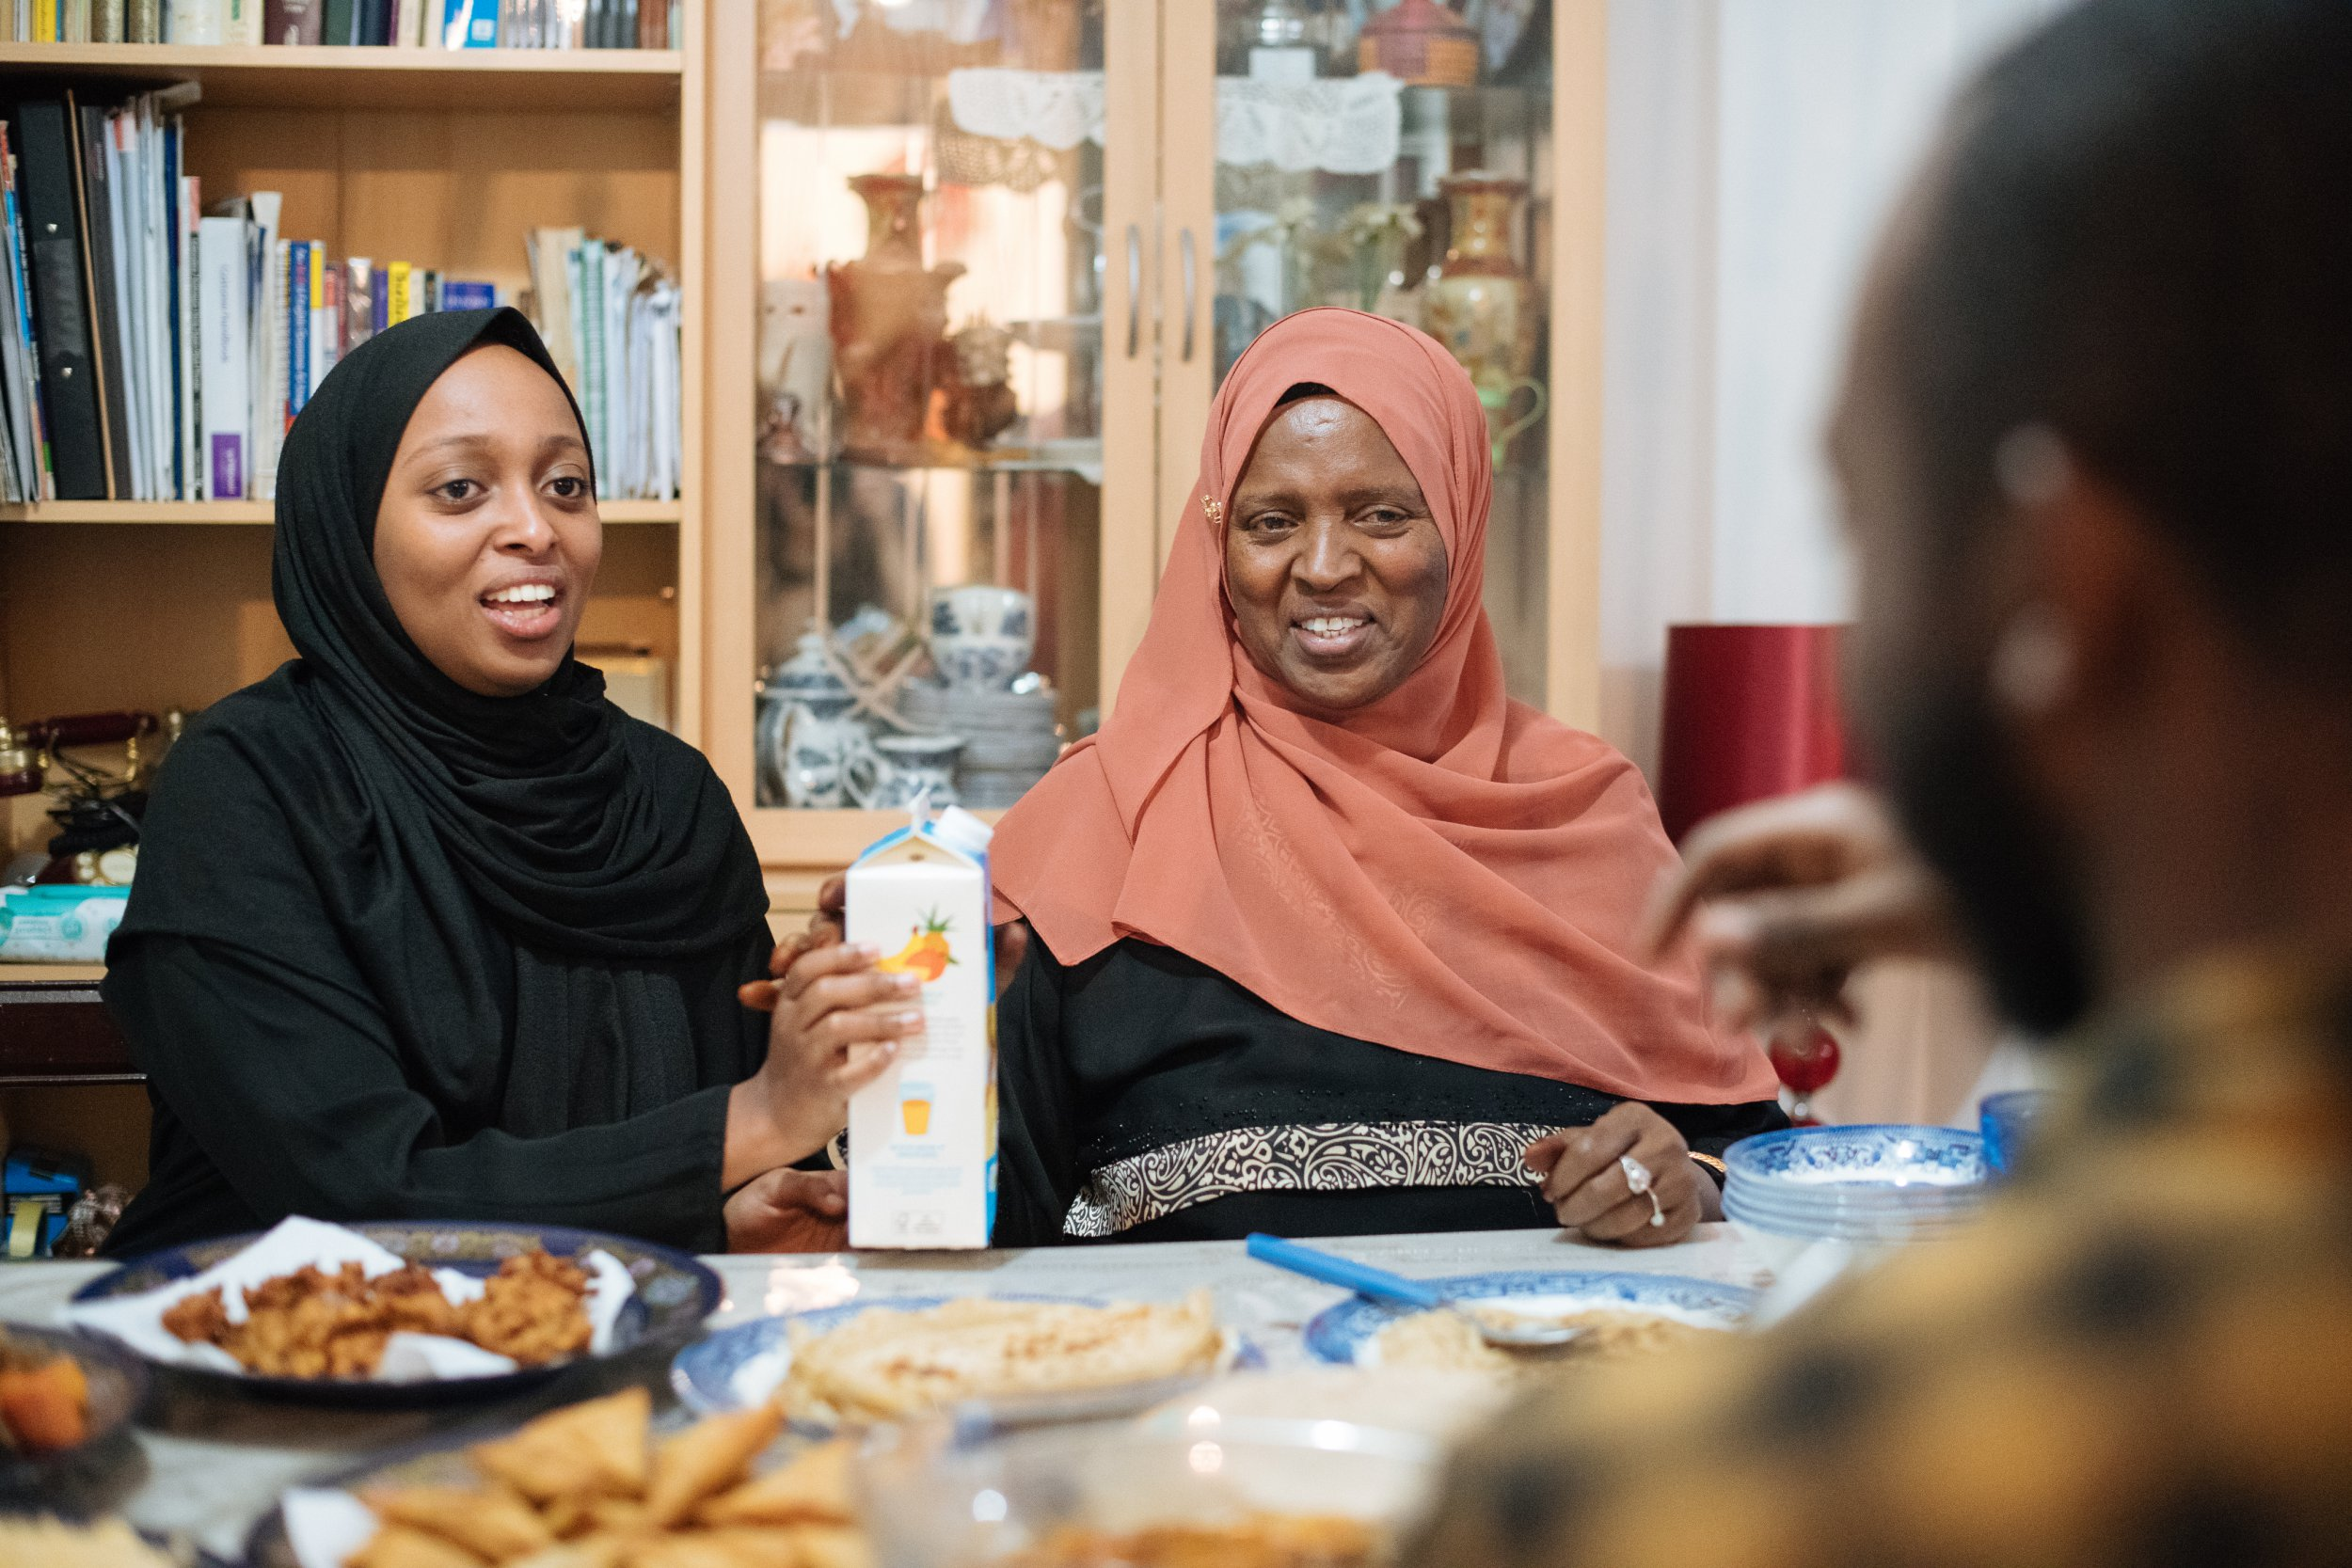 Muslims Who Fast: Amin, a medical student, shows us food from Somalia